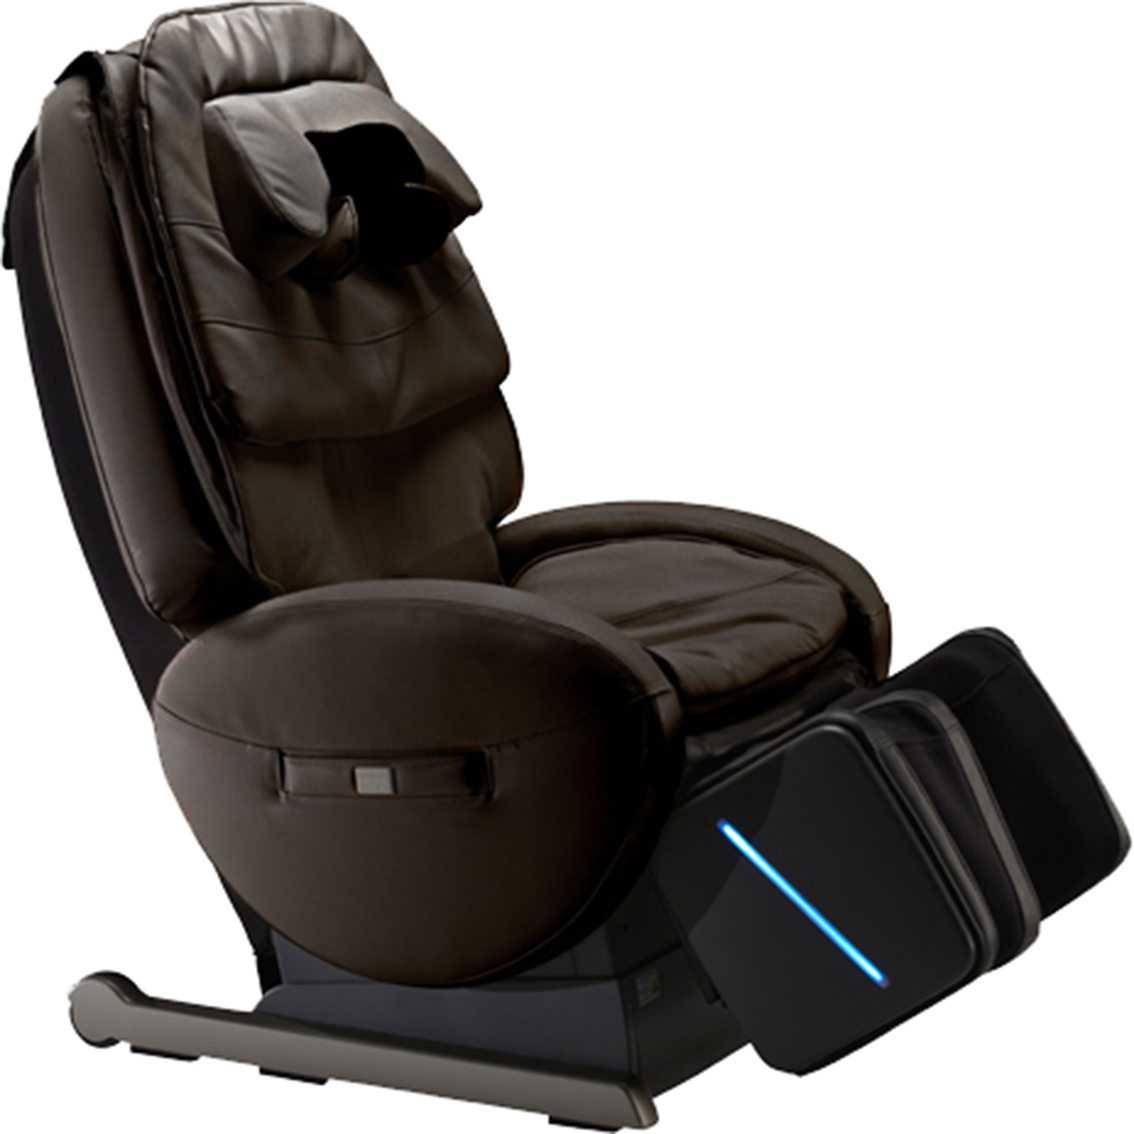 Inada Chair Inada Yume Rocking Massage Chair Brown Chairs